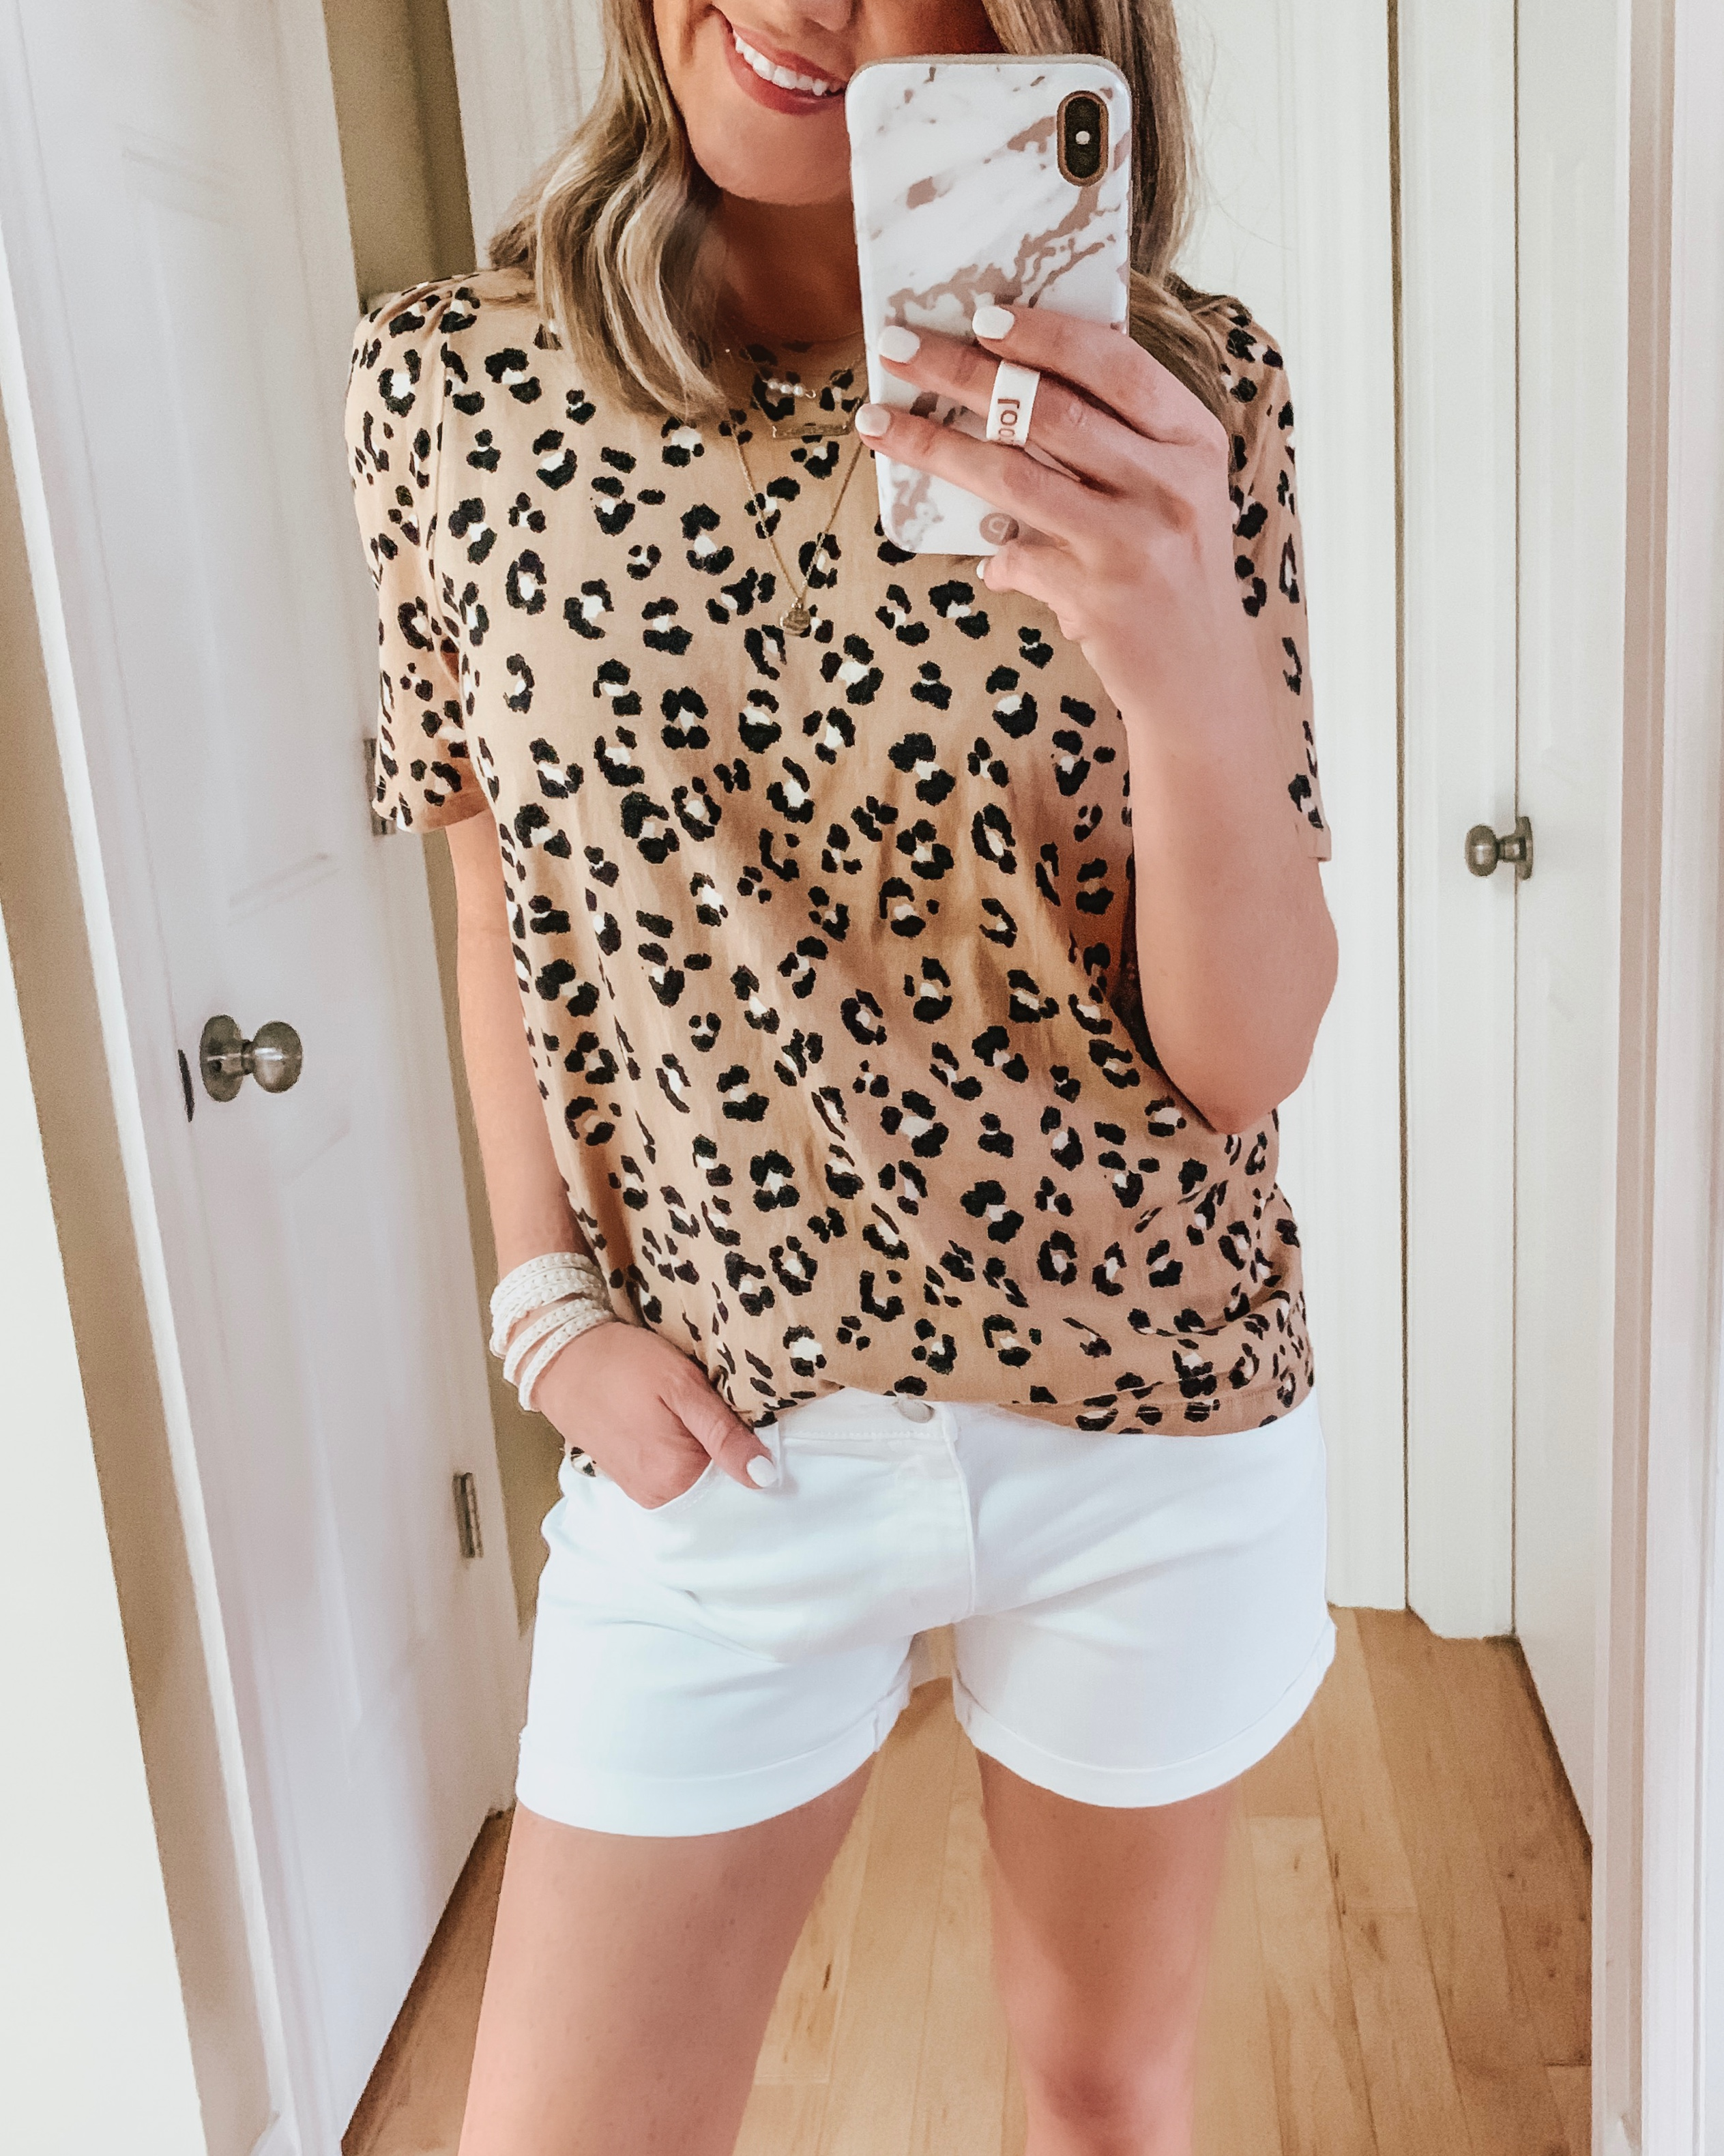 nine ways to style white shorts, leopard tee